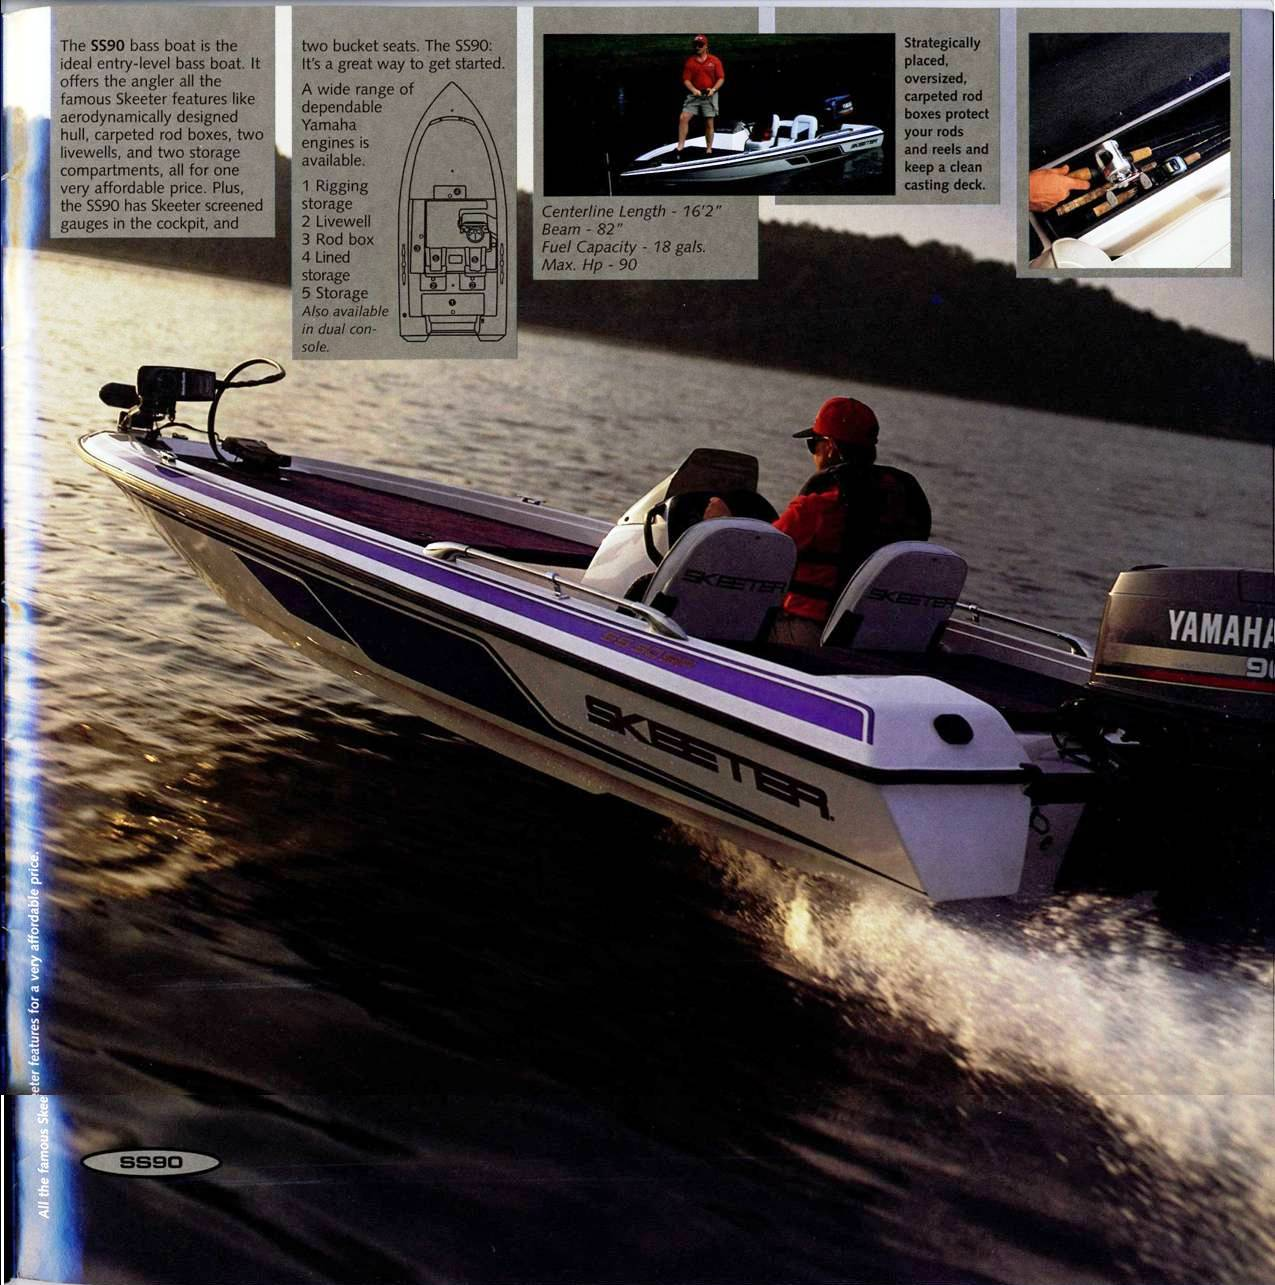 1998 Skeeter Brochure Ss90 Wiring Diagram Click To Return